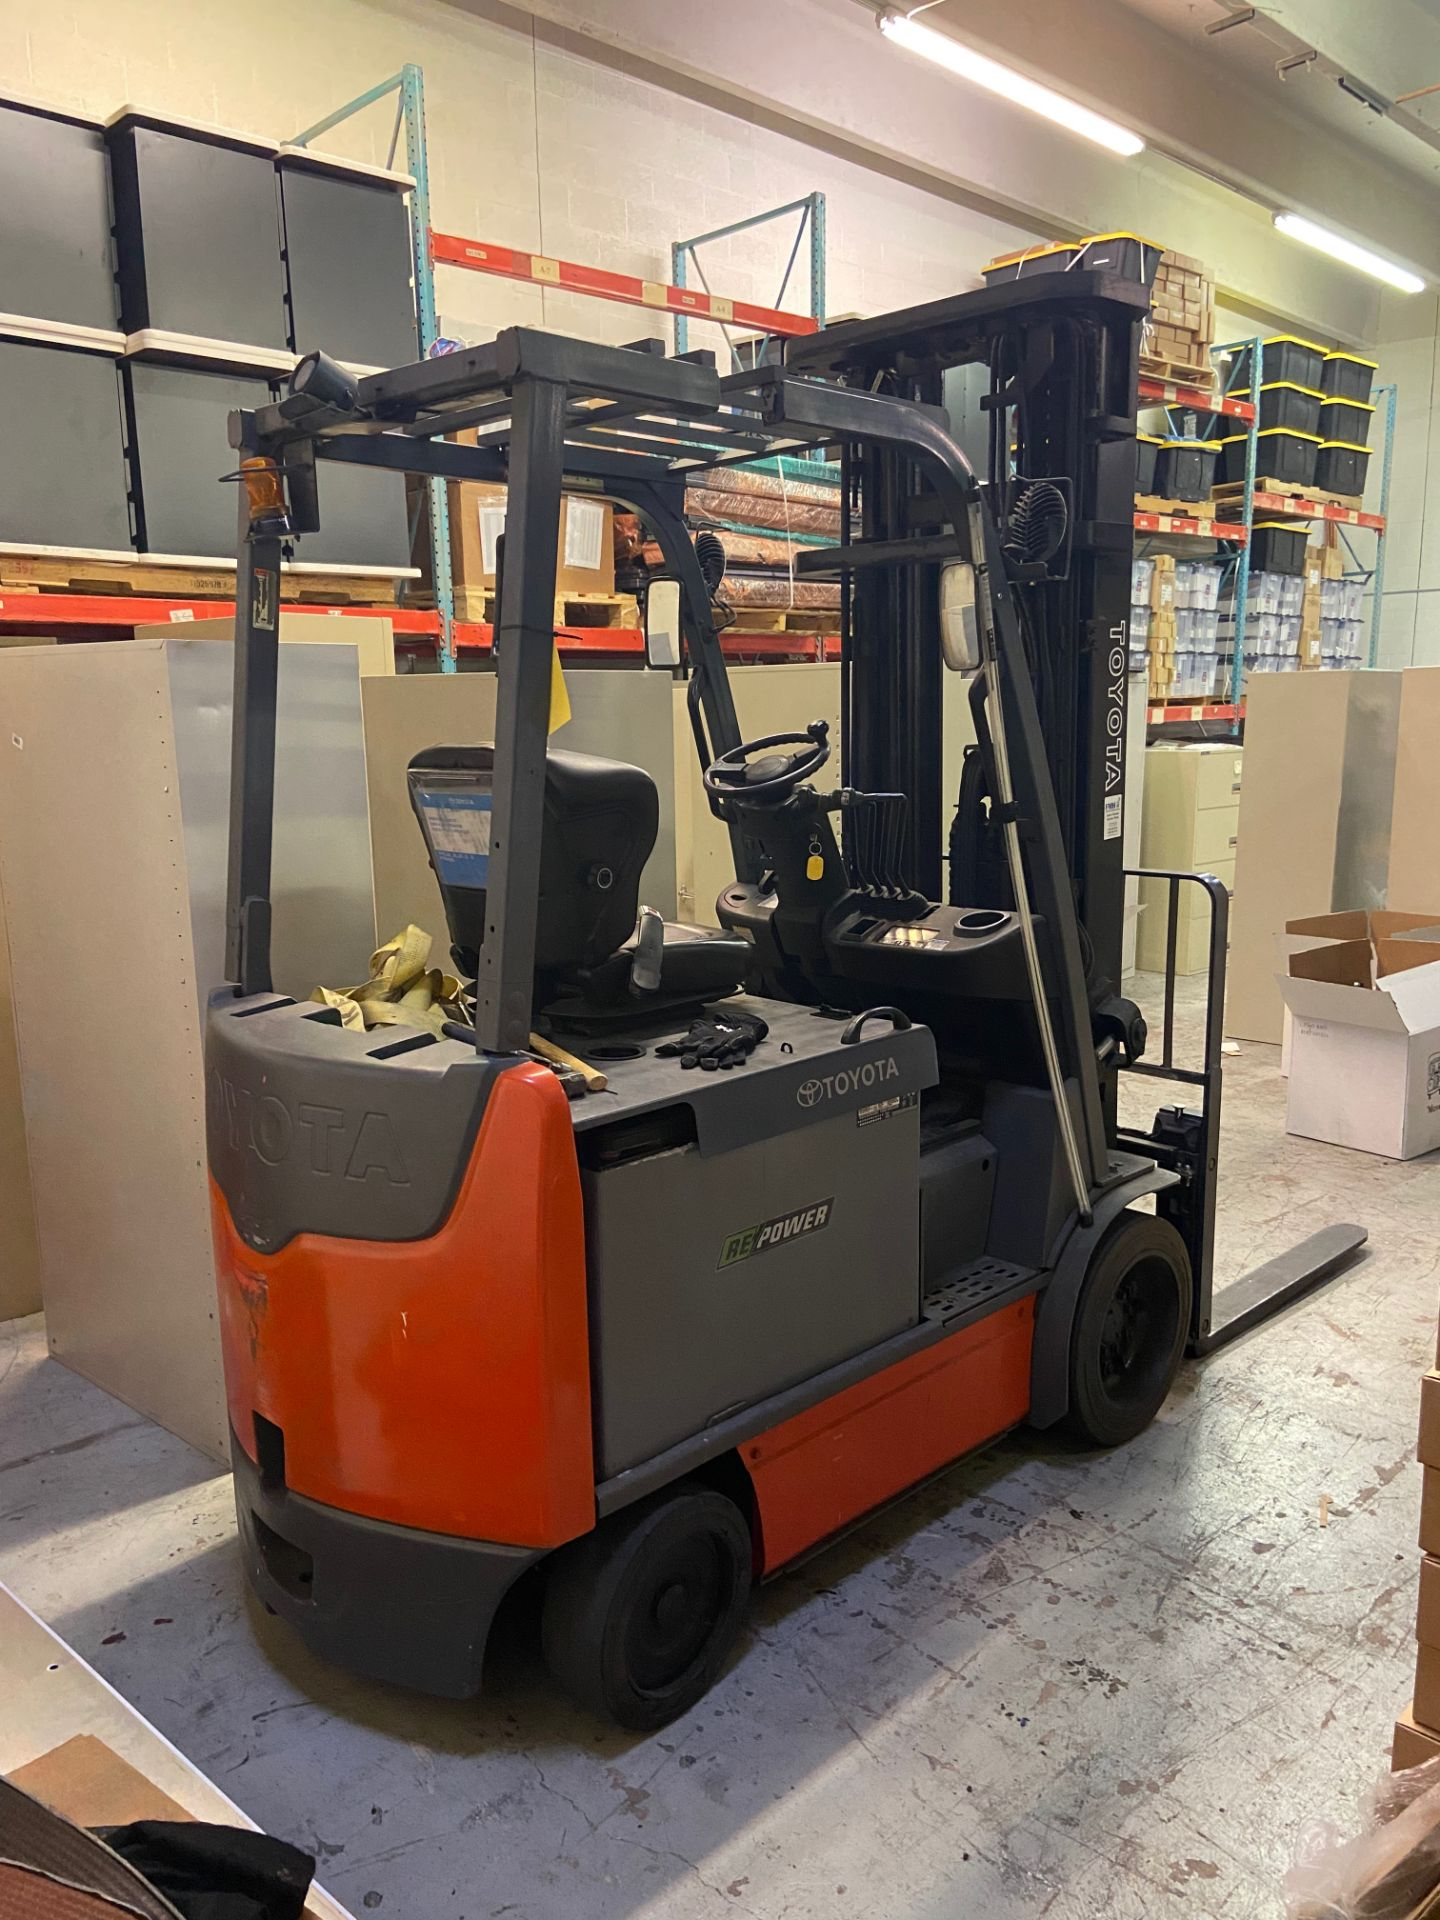 Toyota Electric Forklift Truck, Model# 8FBCU30, Serial# 60709, Truck Weight 8920 lbs, 12,273.2